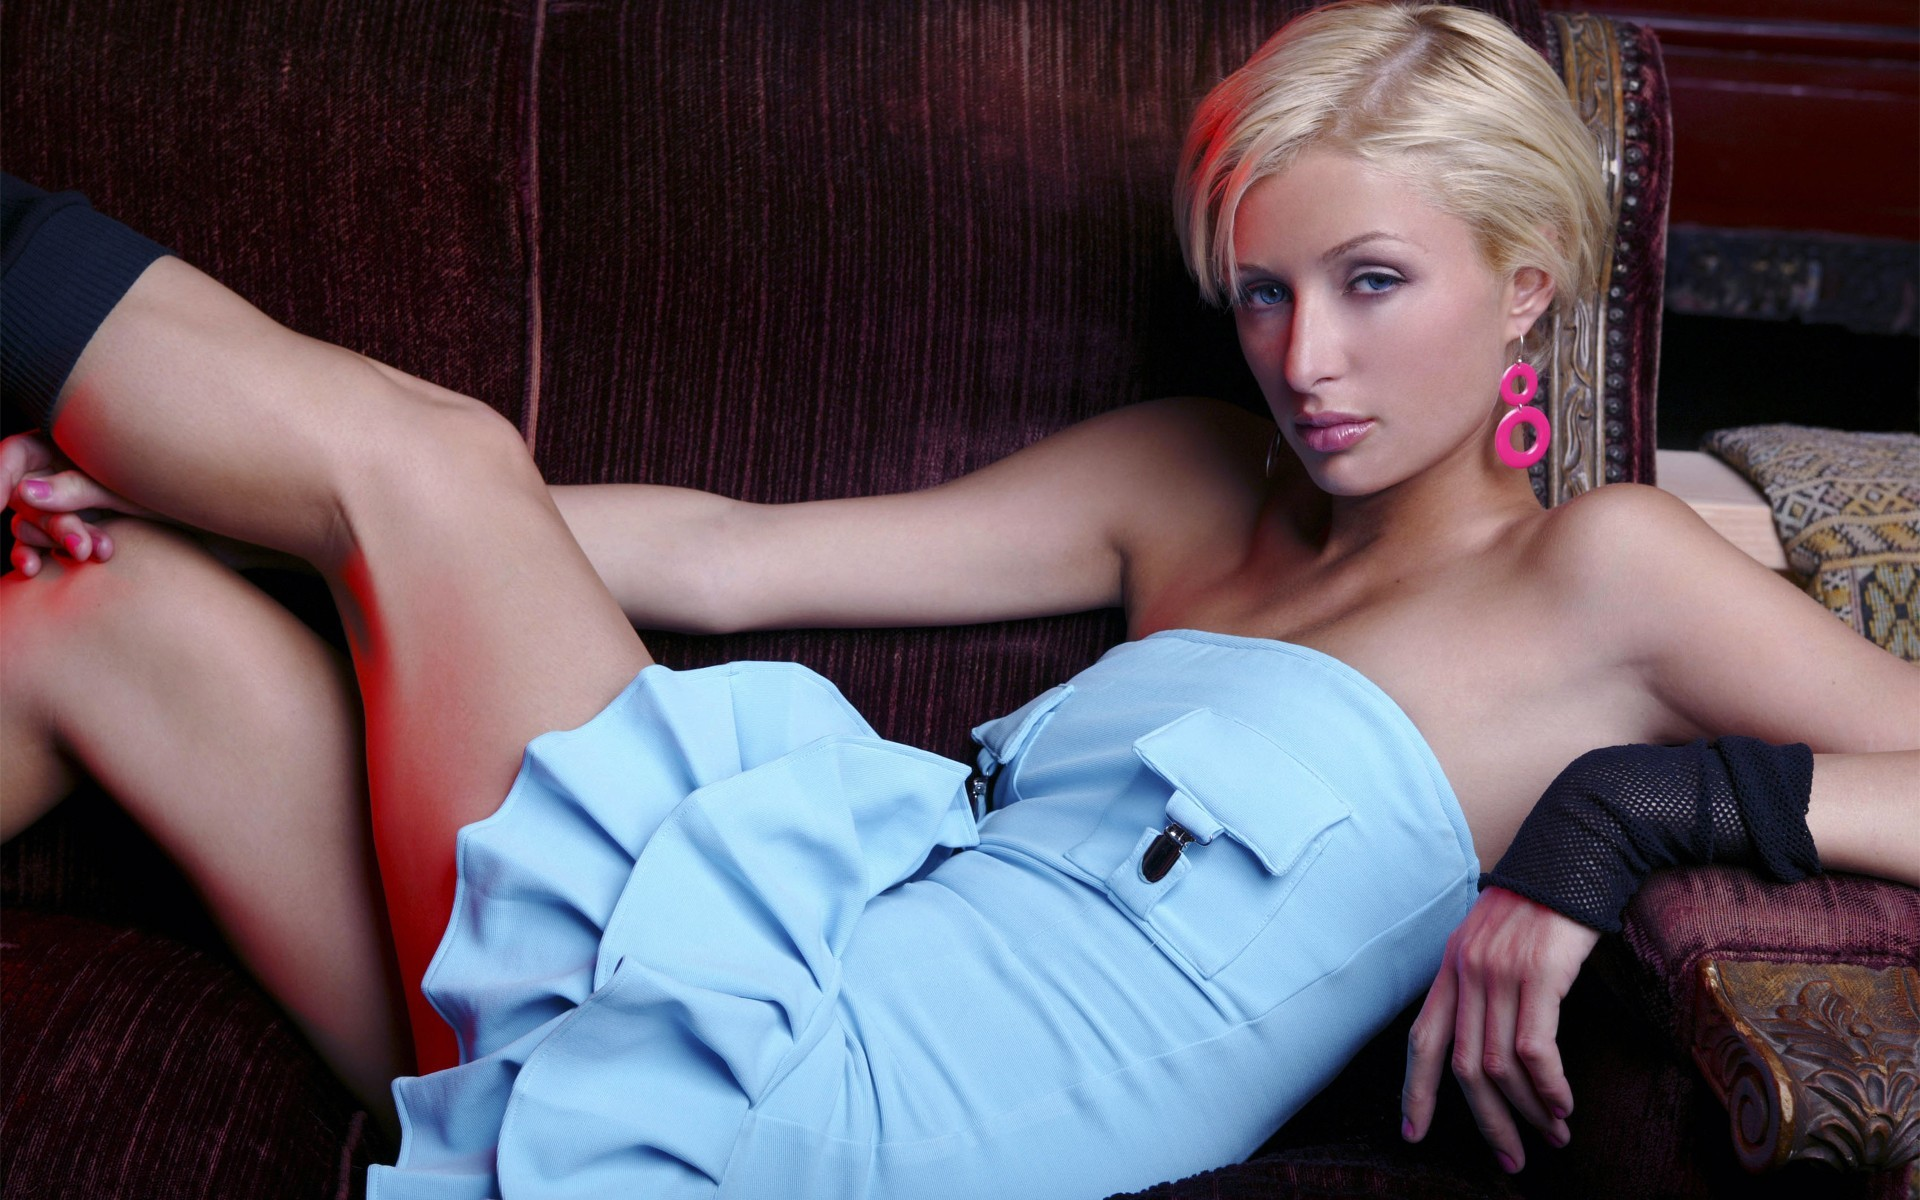 blondes woman Paris Hilton HD Wallpaper